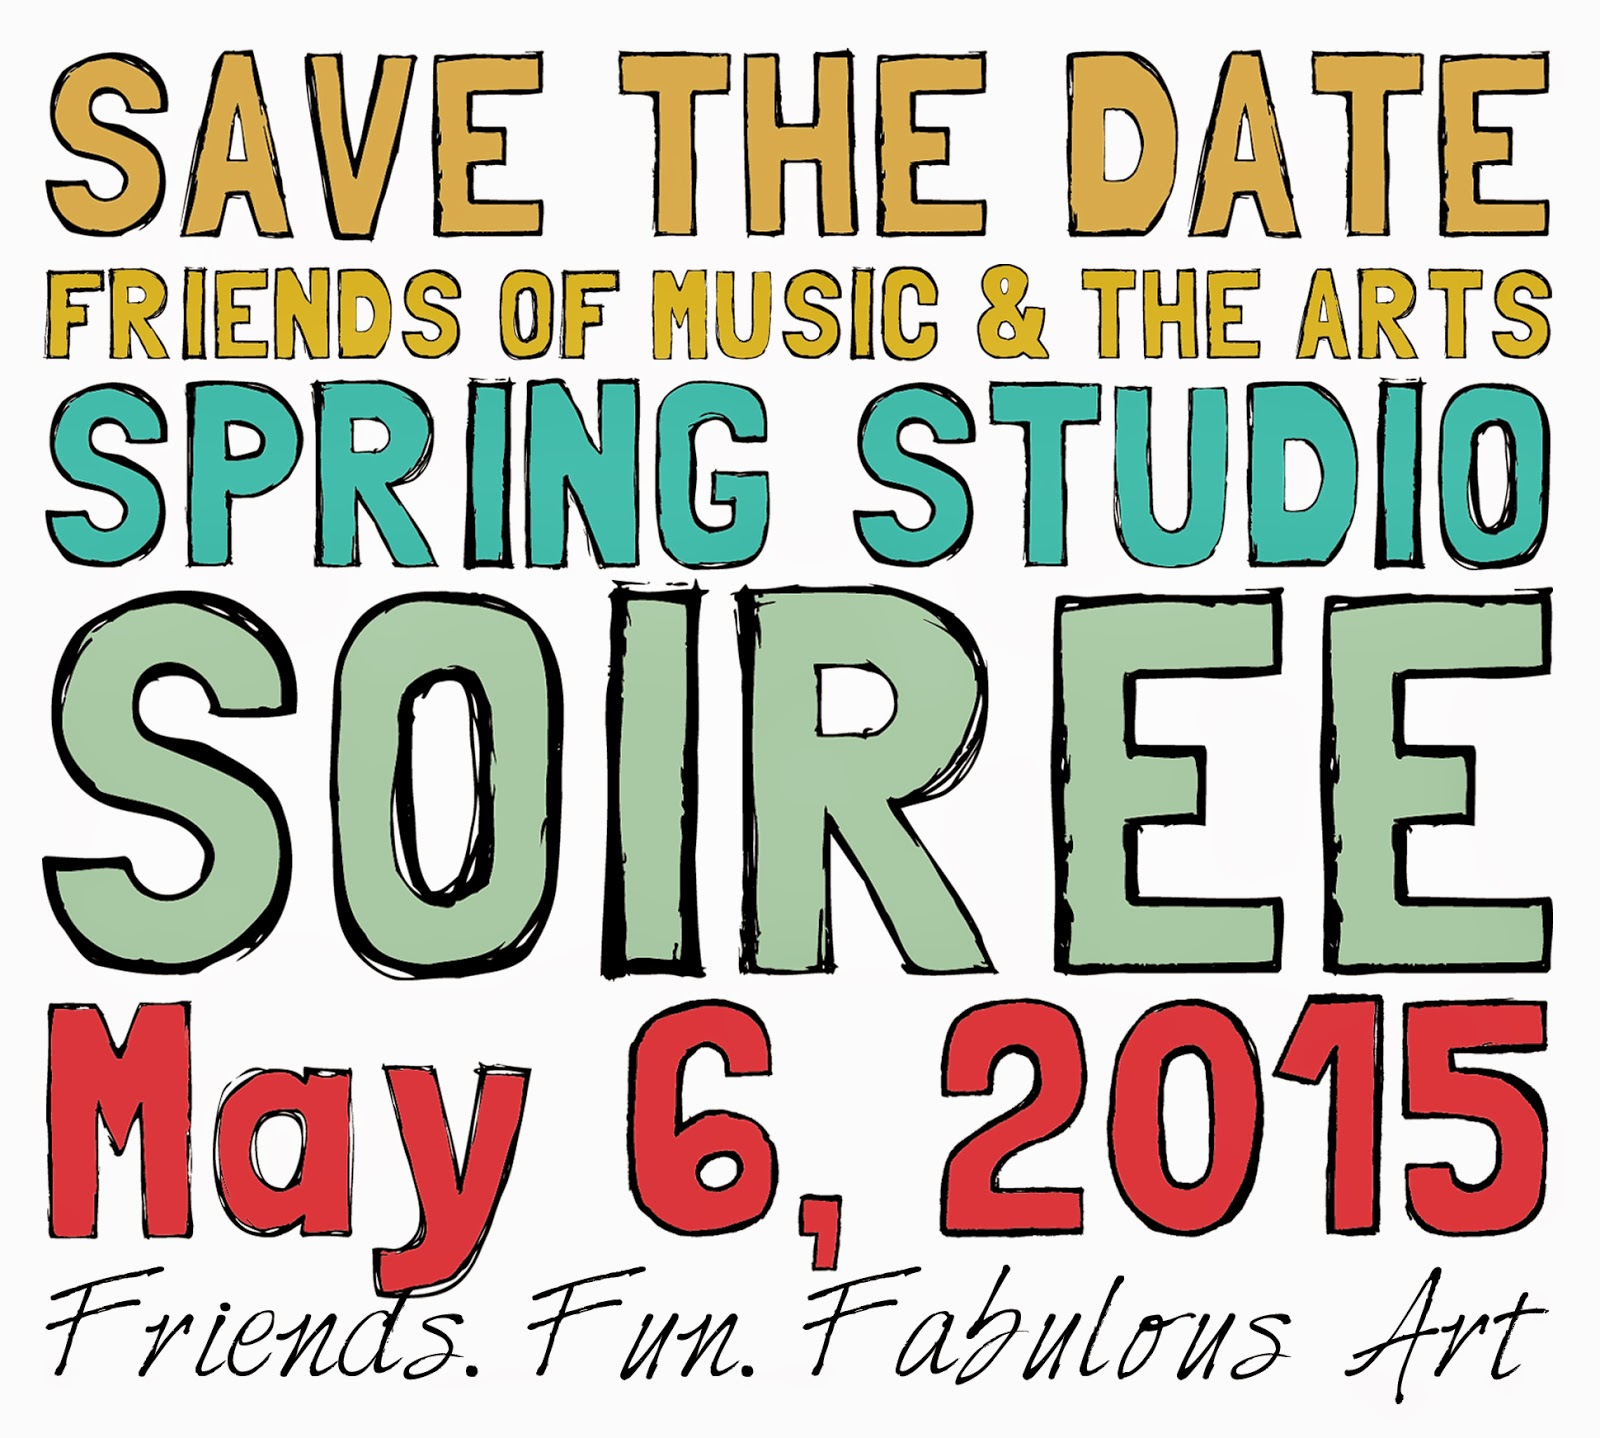 open studio of Miriam Schulman May 6, 2015 supporting Friends of Music and Art